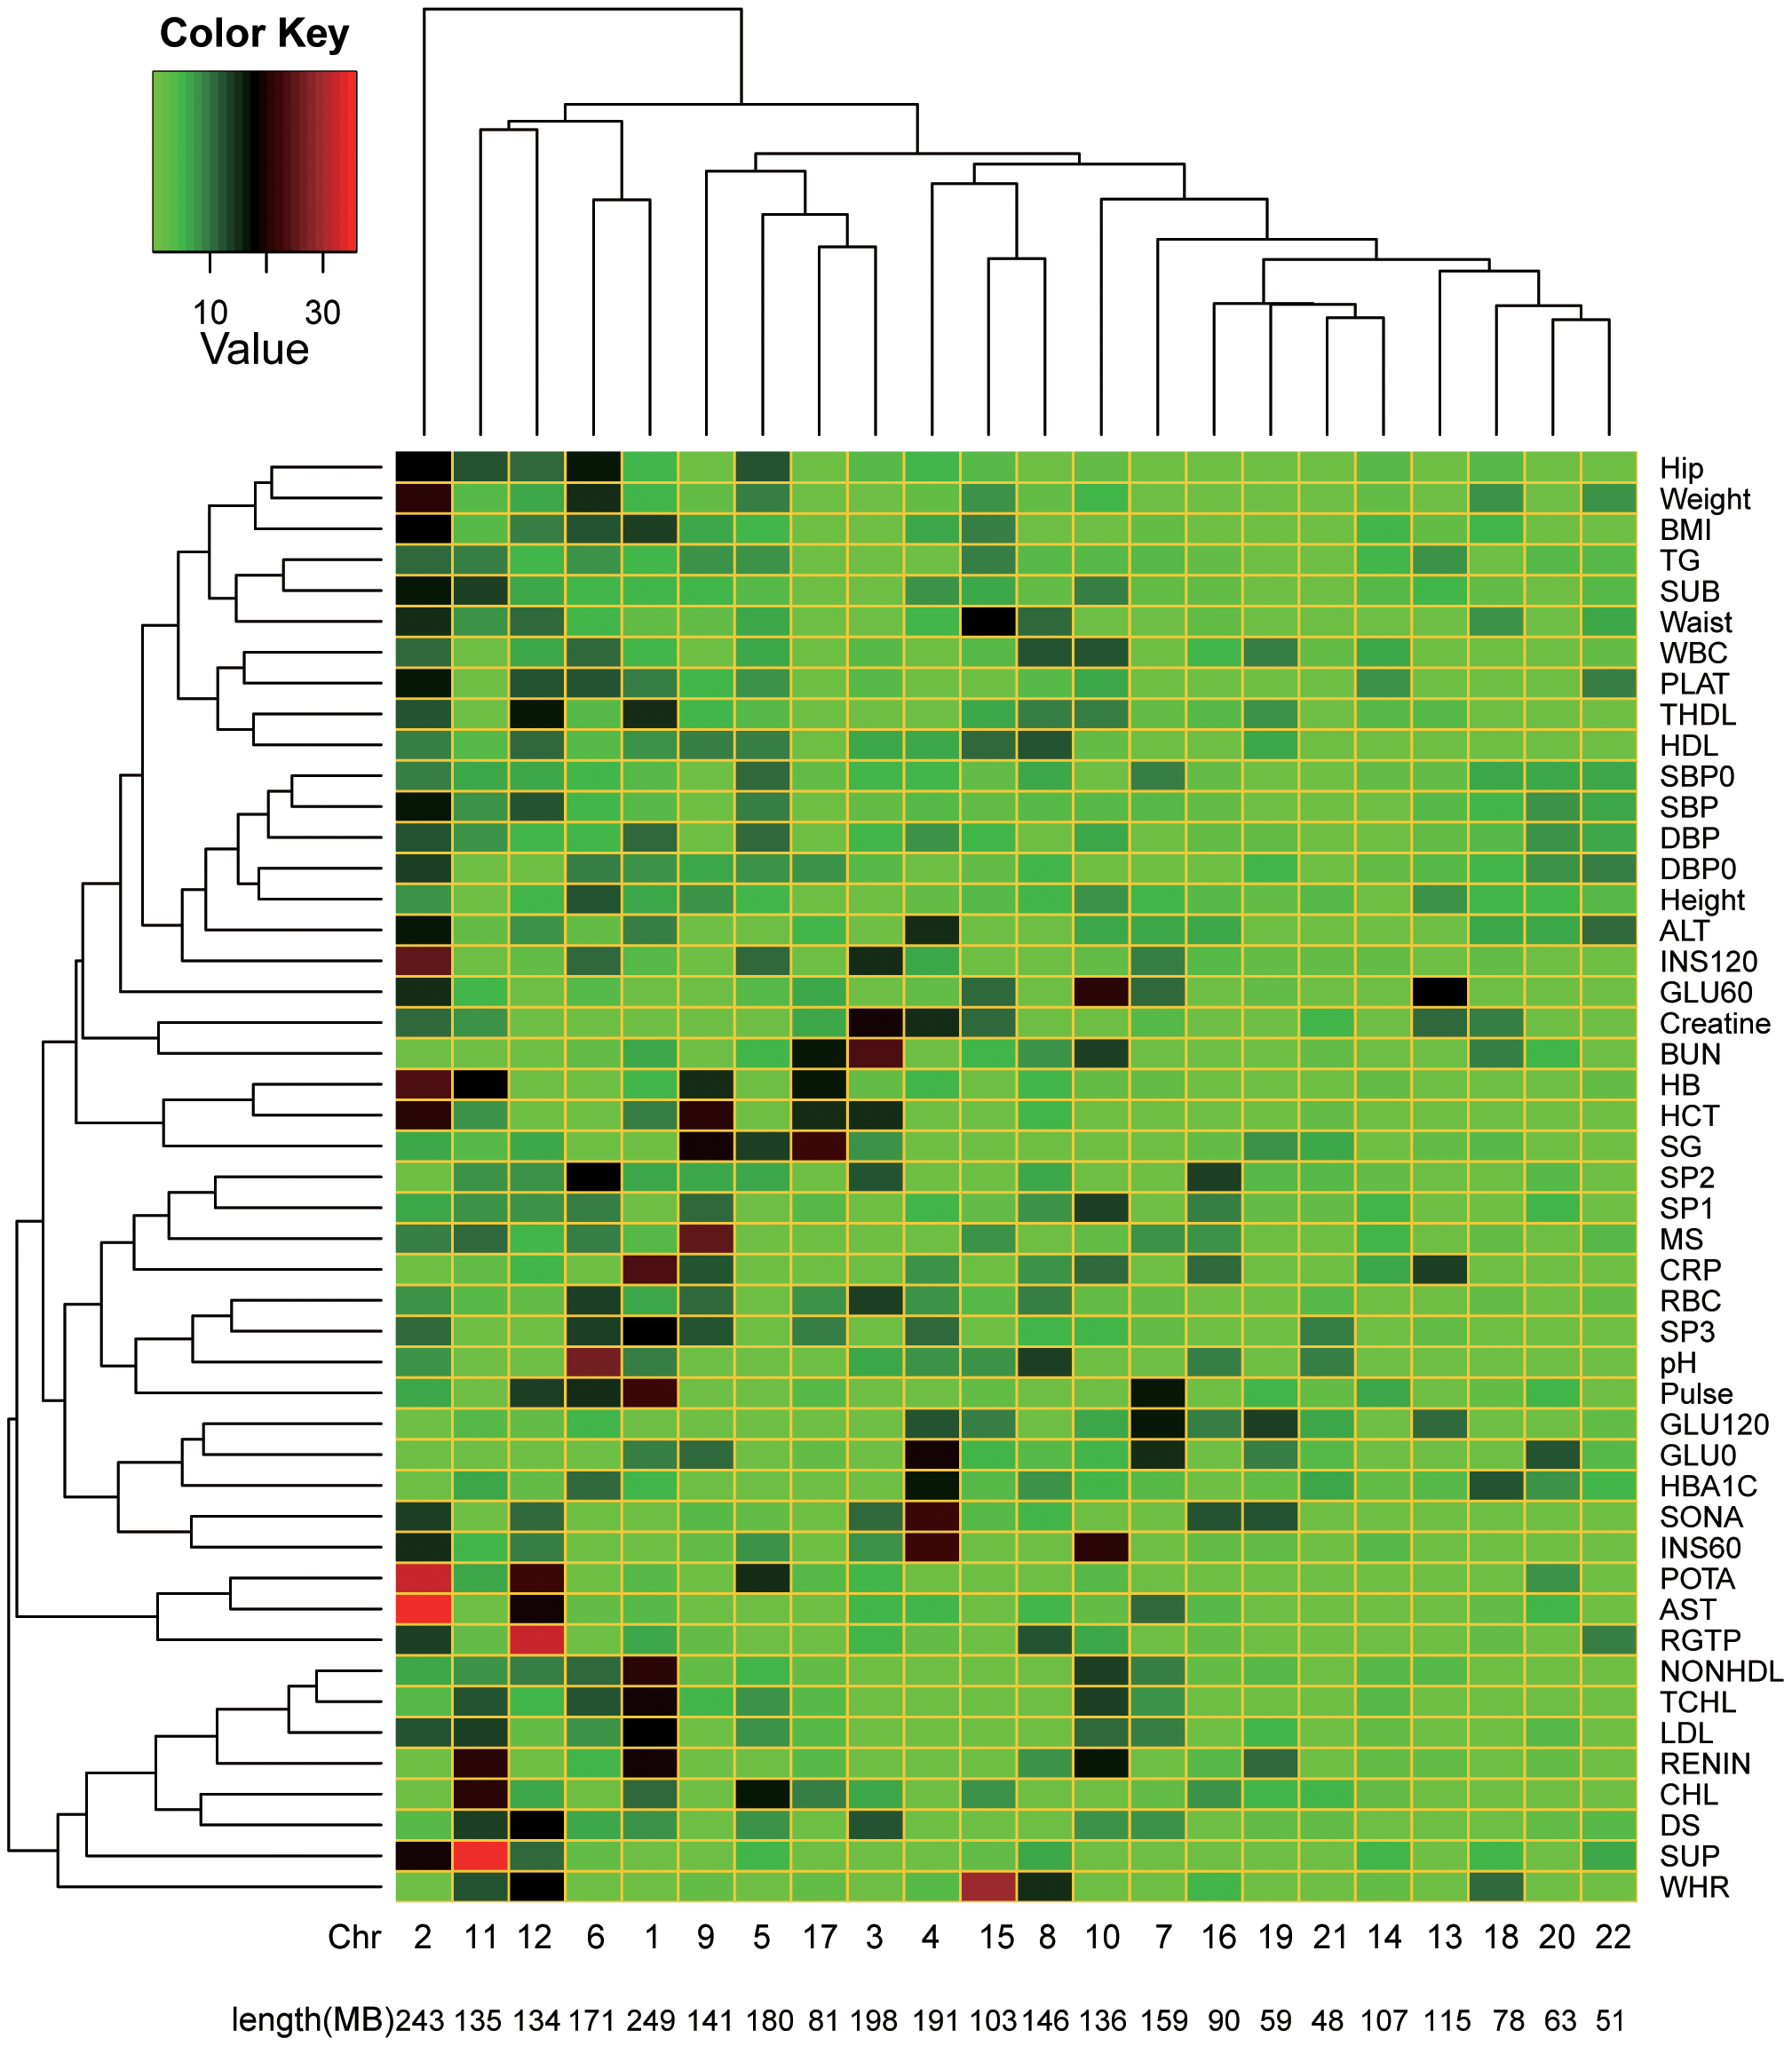 Heatmap of the proportions of variance explained attributed to individual chromosomes for 47 traits.